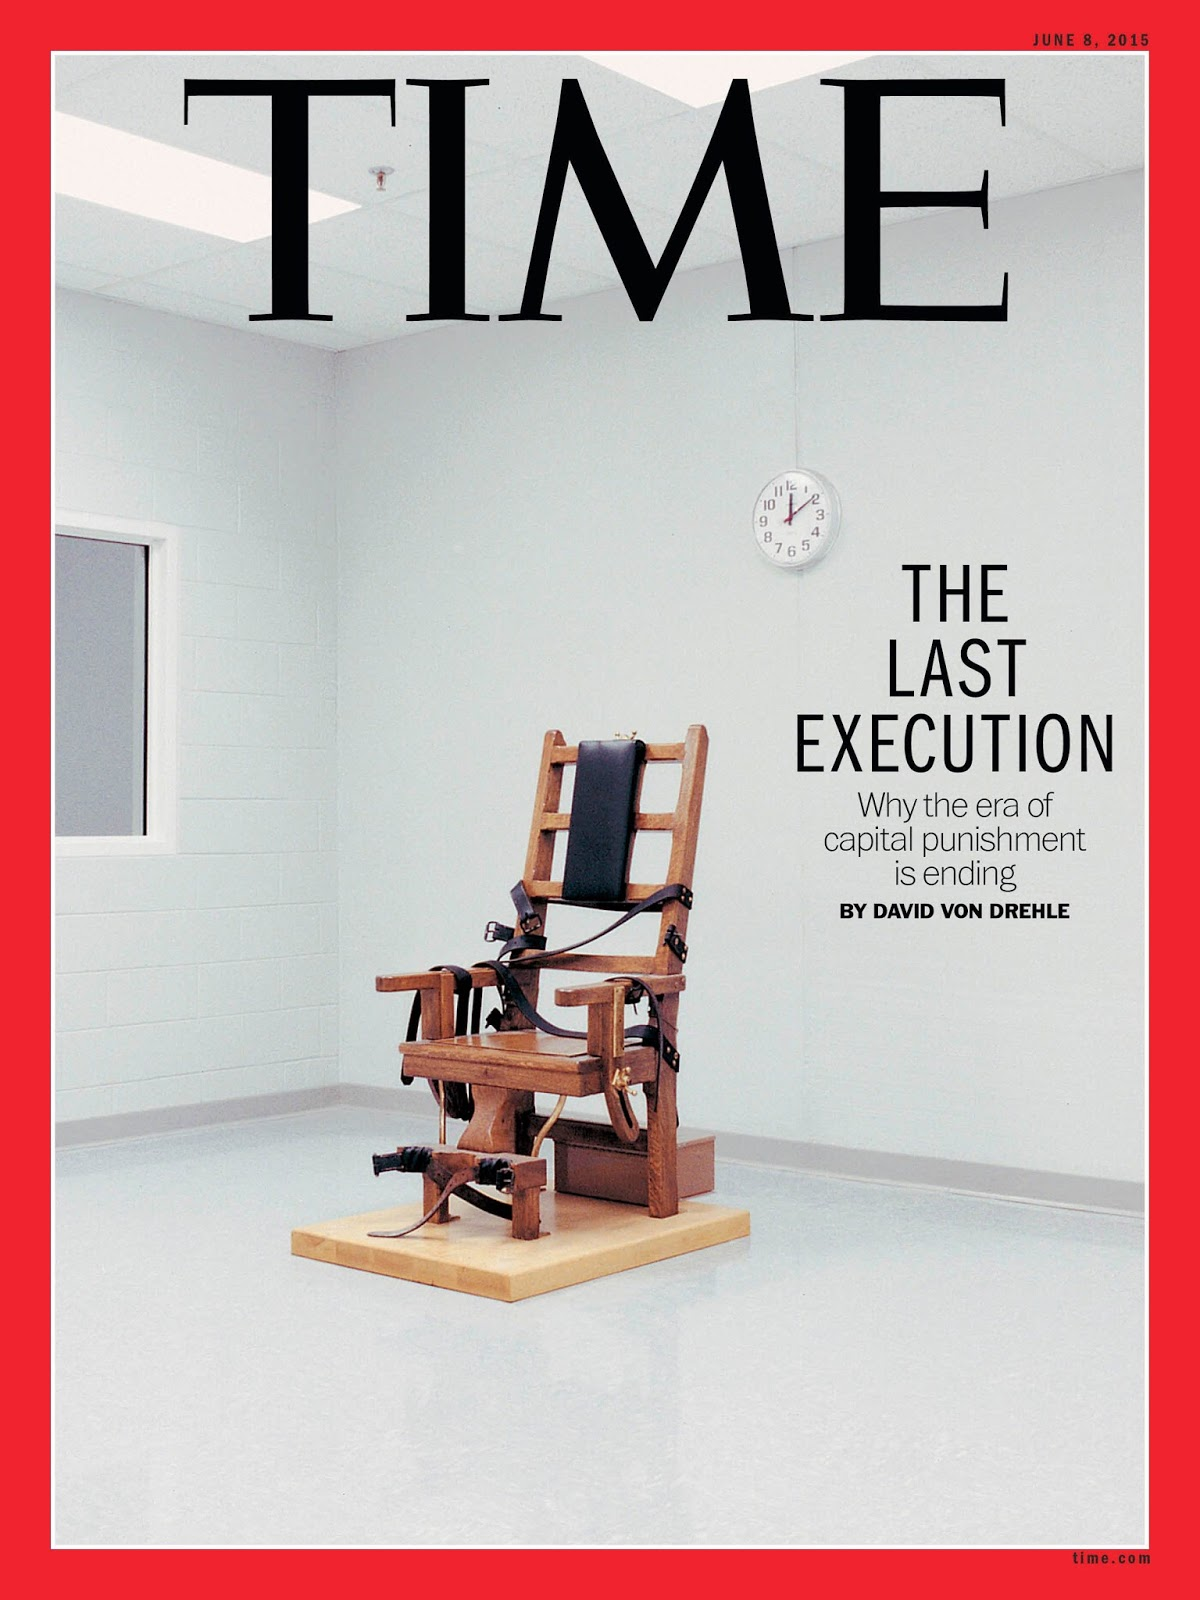 death penalty works cited Who owns death: capital punishment, the american conscience, and the end of   in-text citations should list the author of the work cited, not the editor.